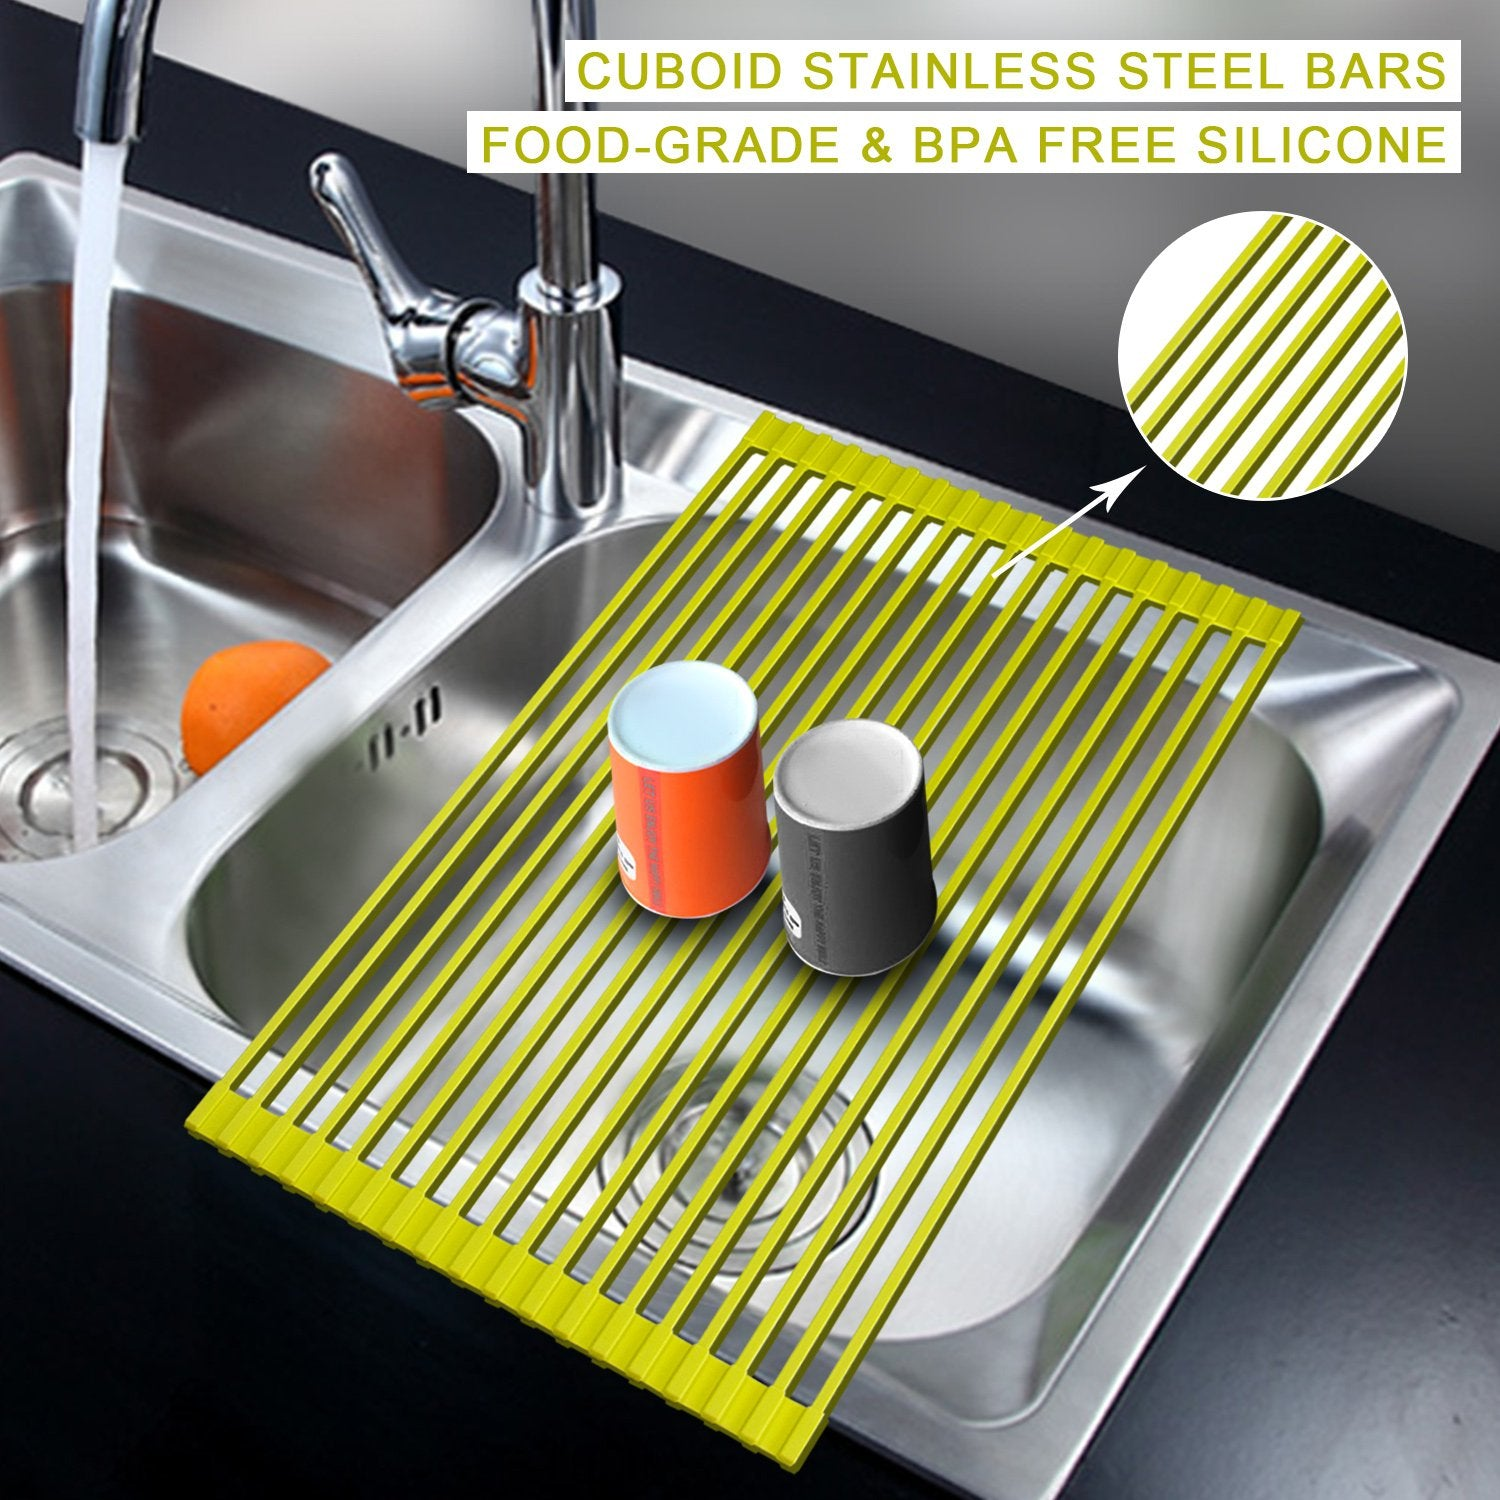 AphroD Roll-Up Dish Drying Rack,Over the Sink Dish Drainer Rack, Stainless Steel Multipurpose Dish Drying for Tableware, Fruits Veggies, Silicone Wrapped Folding Dish Drainer (Lemon Yellow)